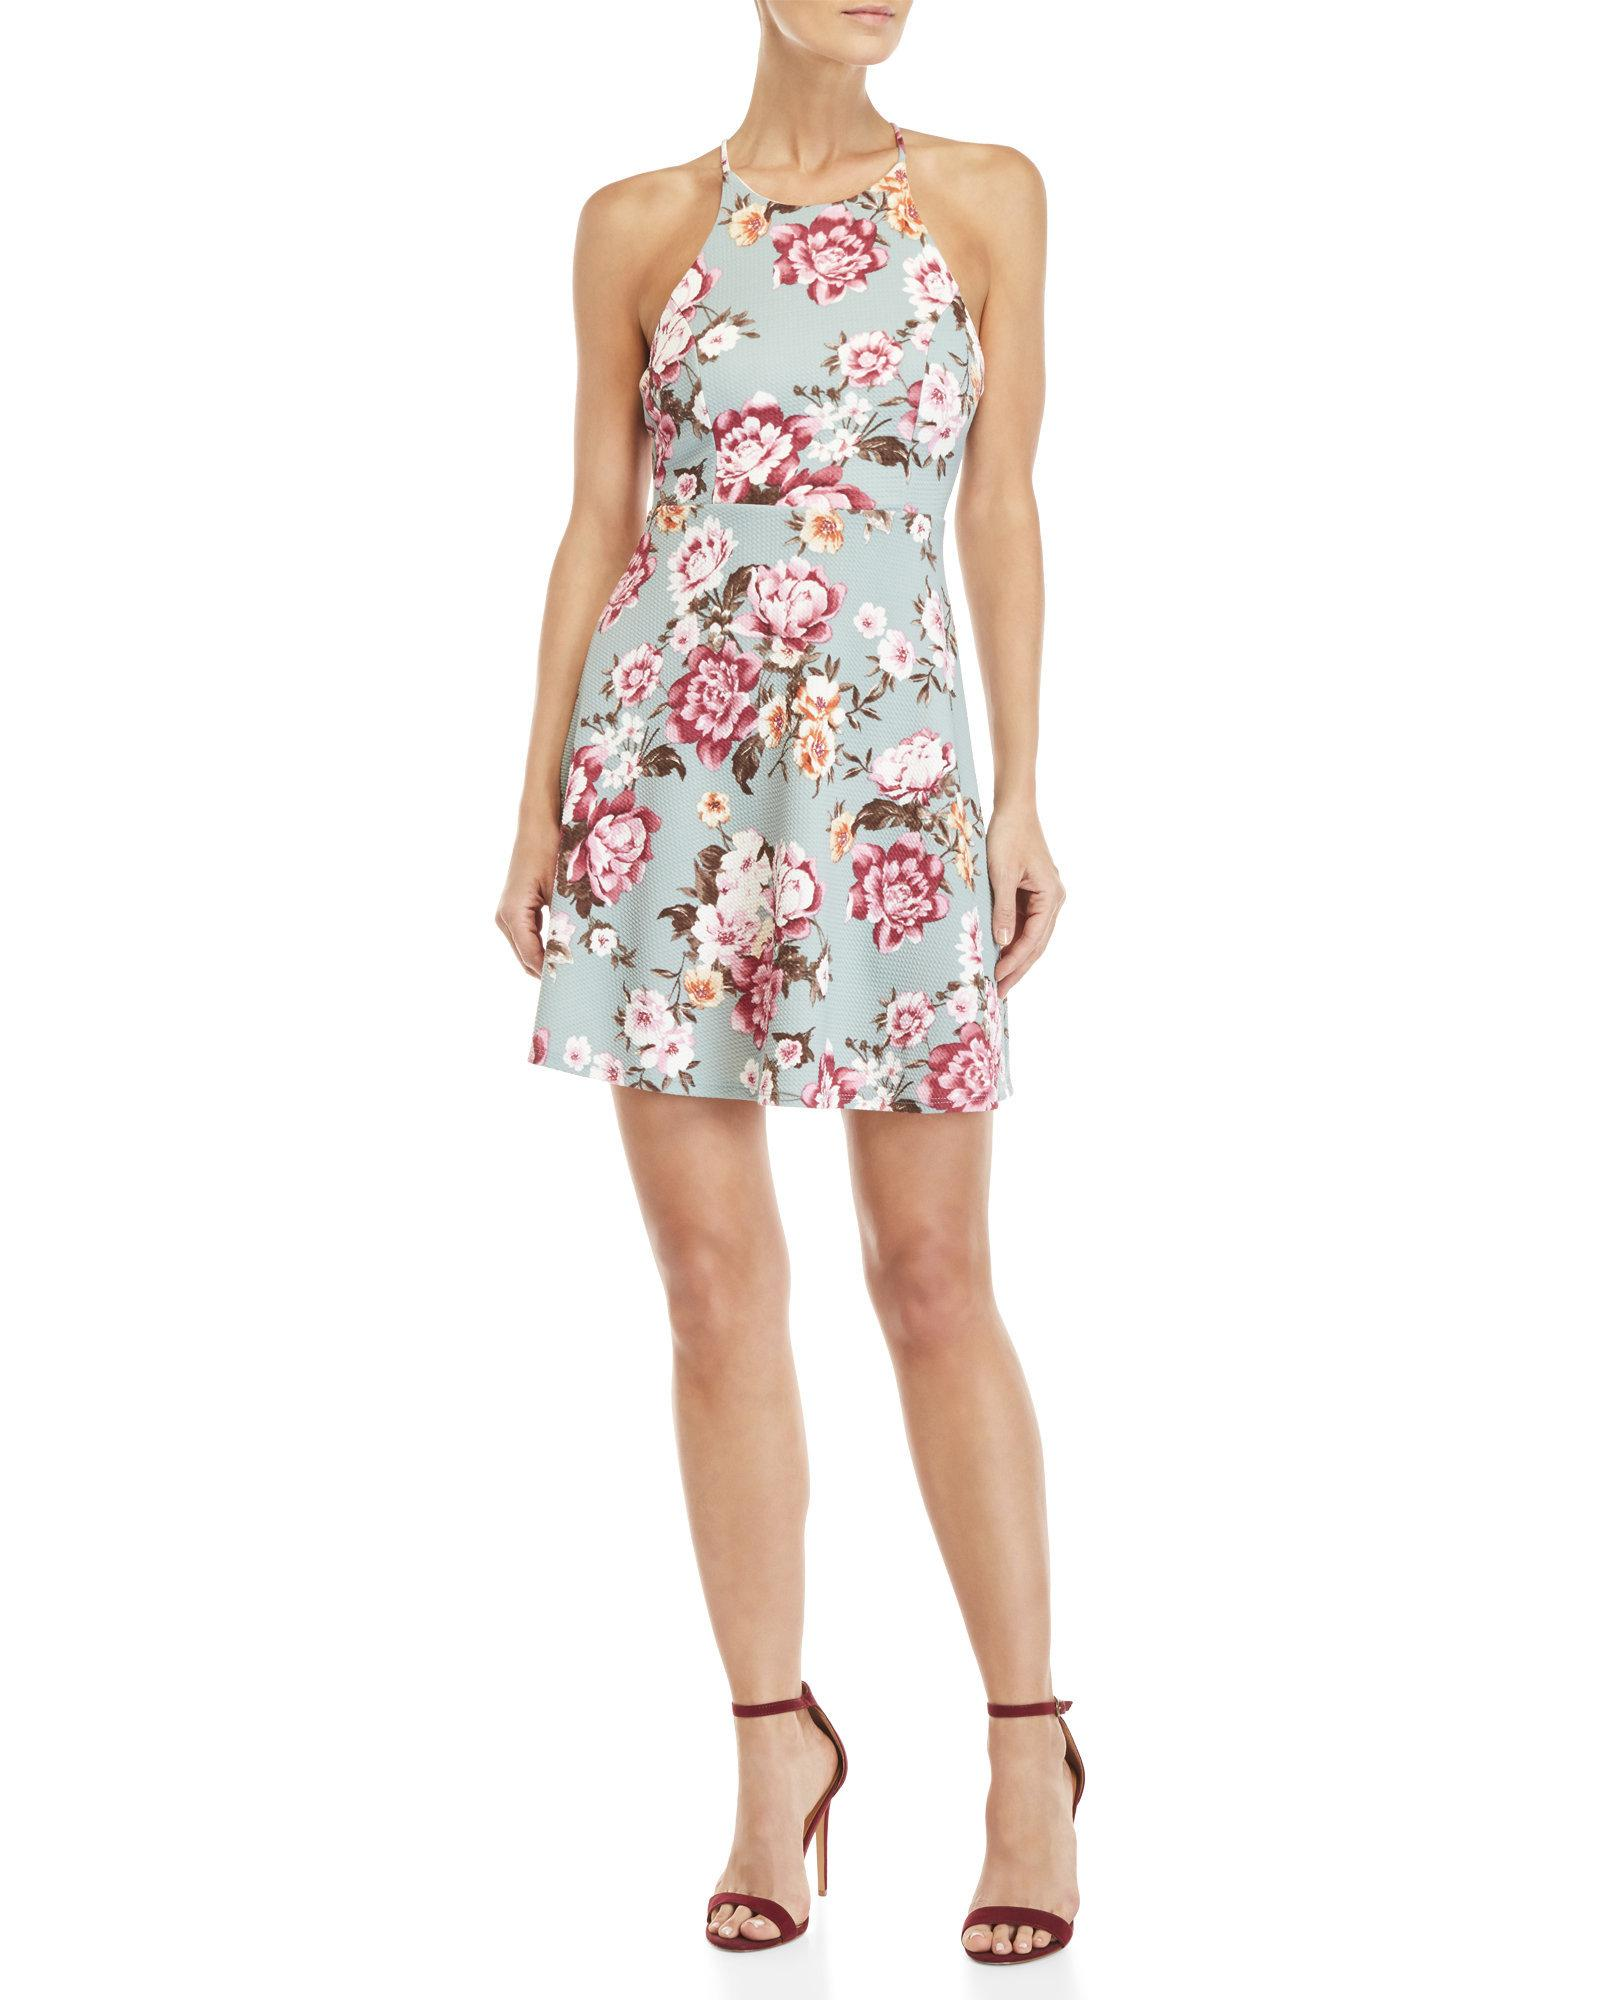 65719ceb8c Lyst - Soprano High Neck Floral Skater Dress